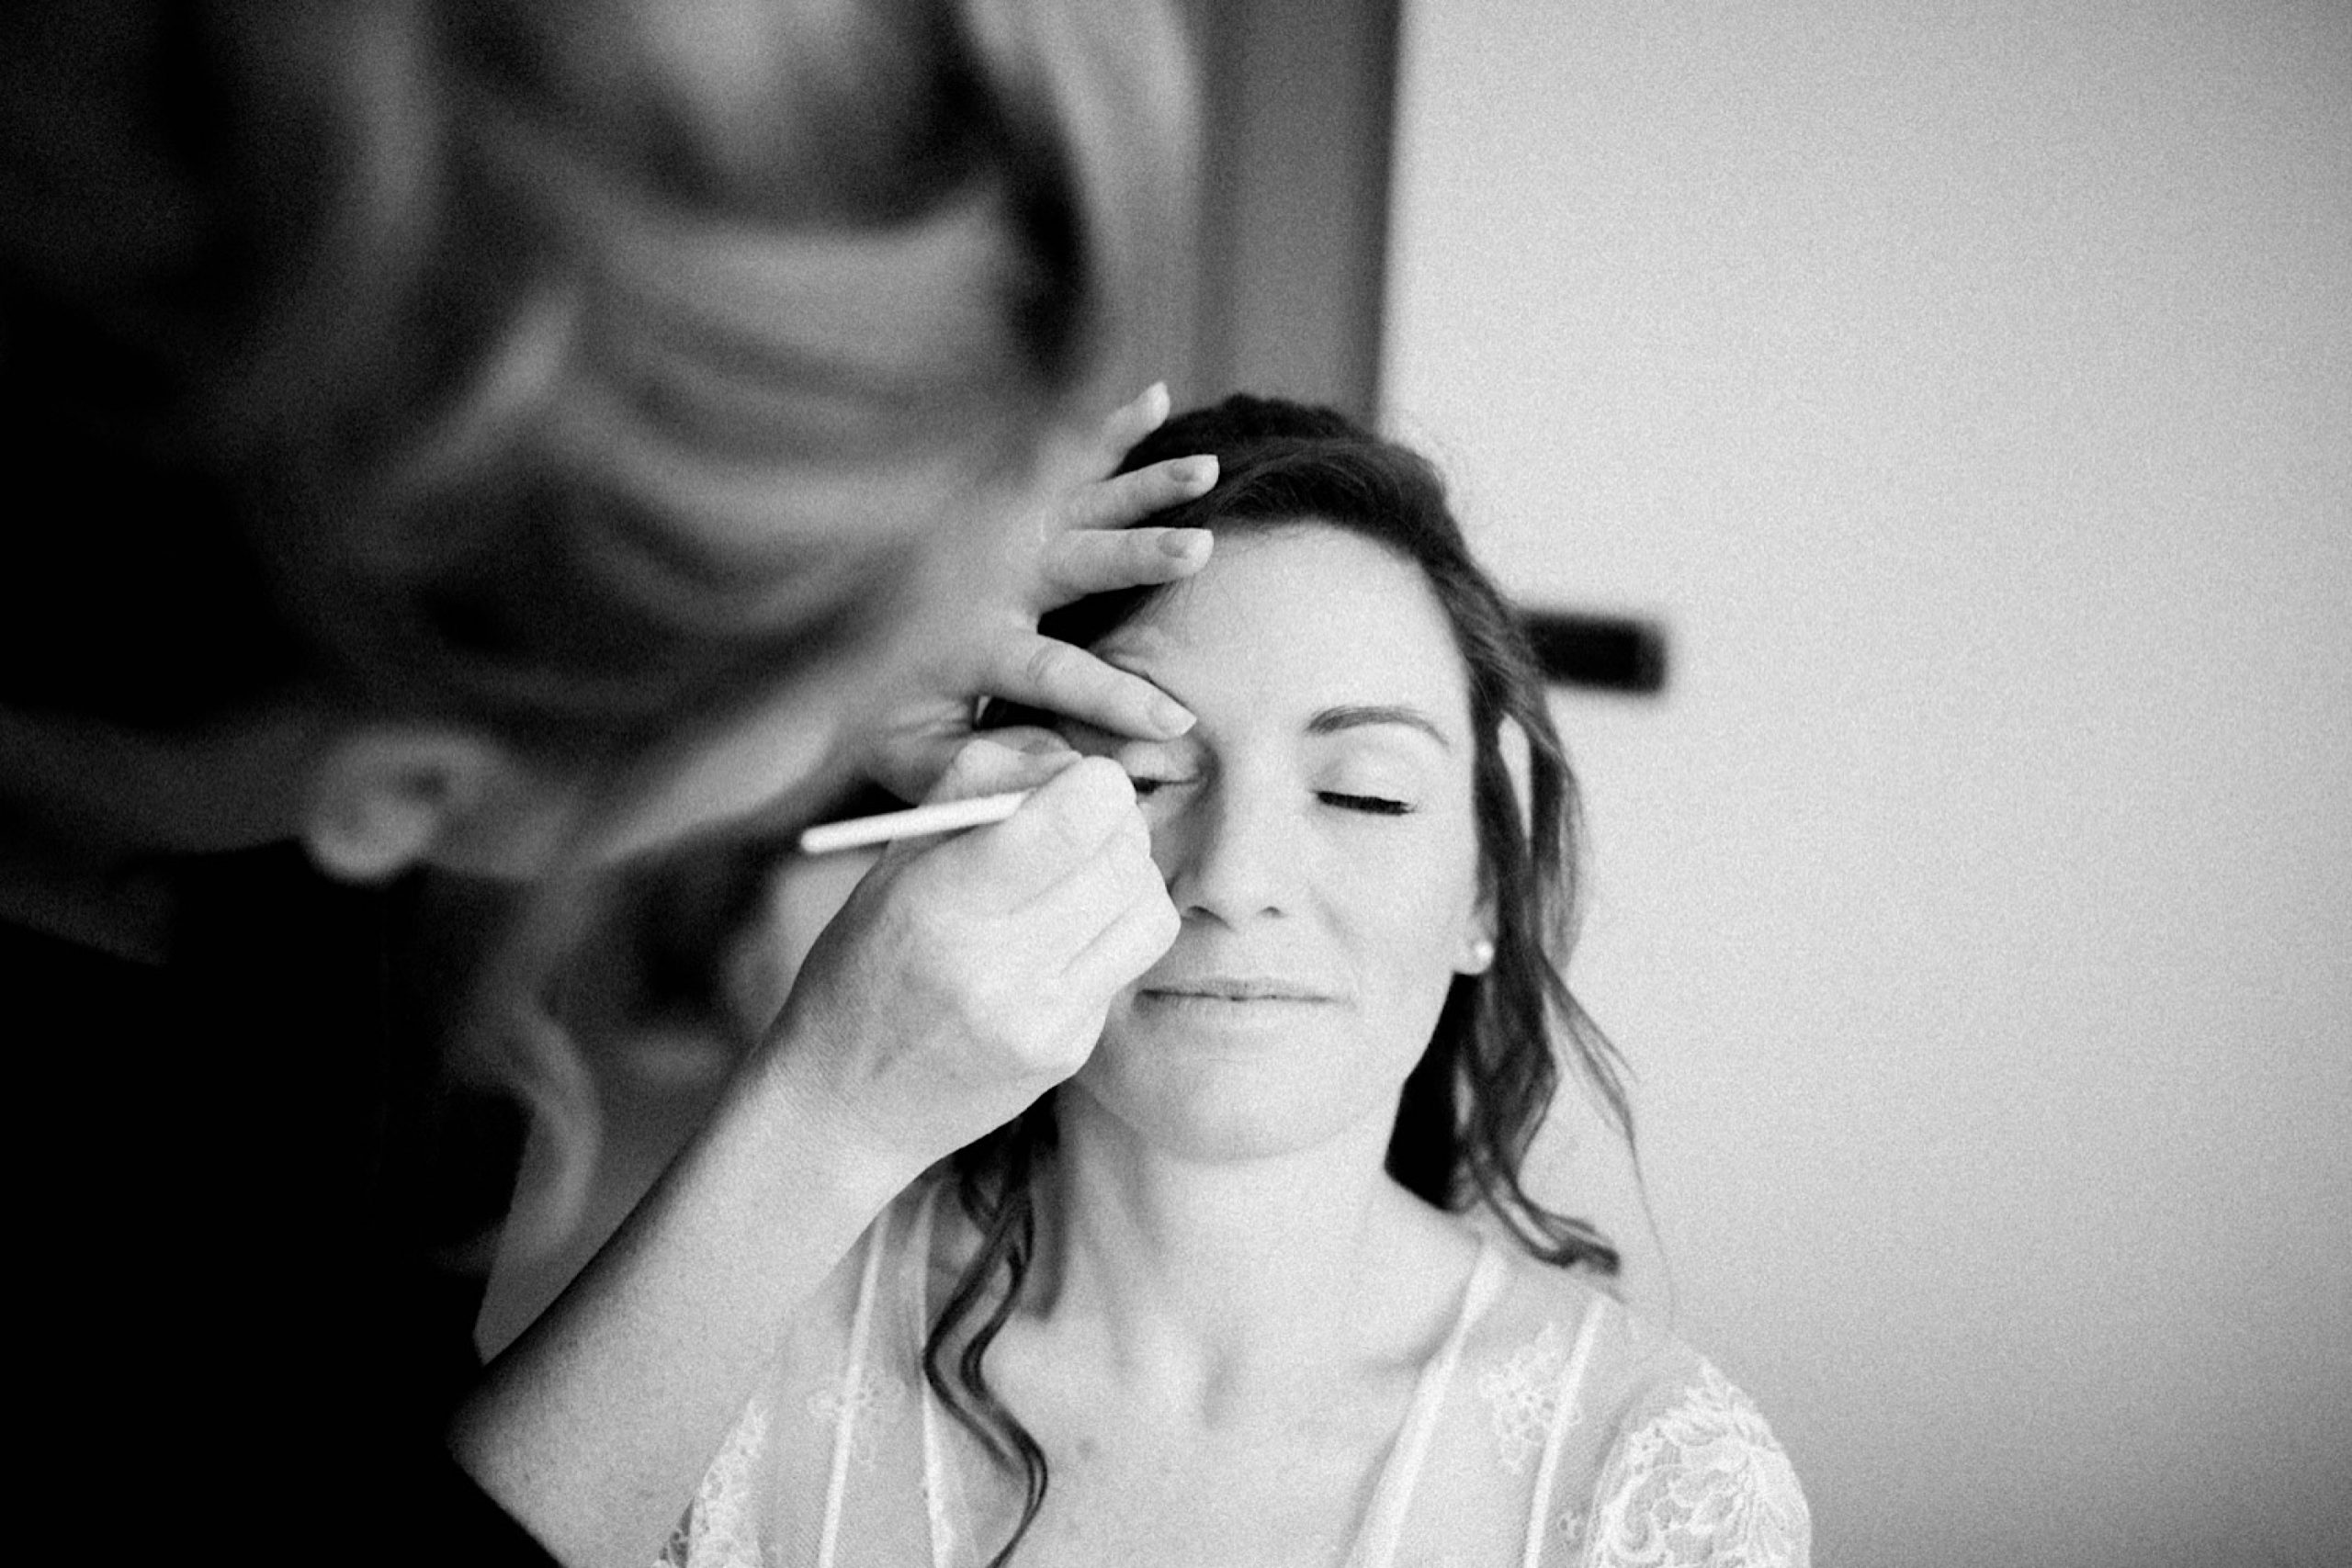 Black and white Destination Wedding Photography of a bride having her makeup done.